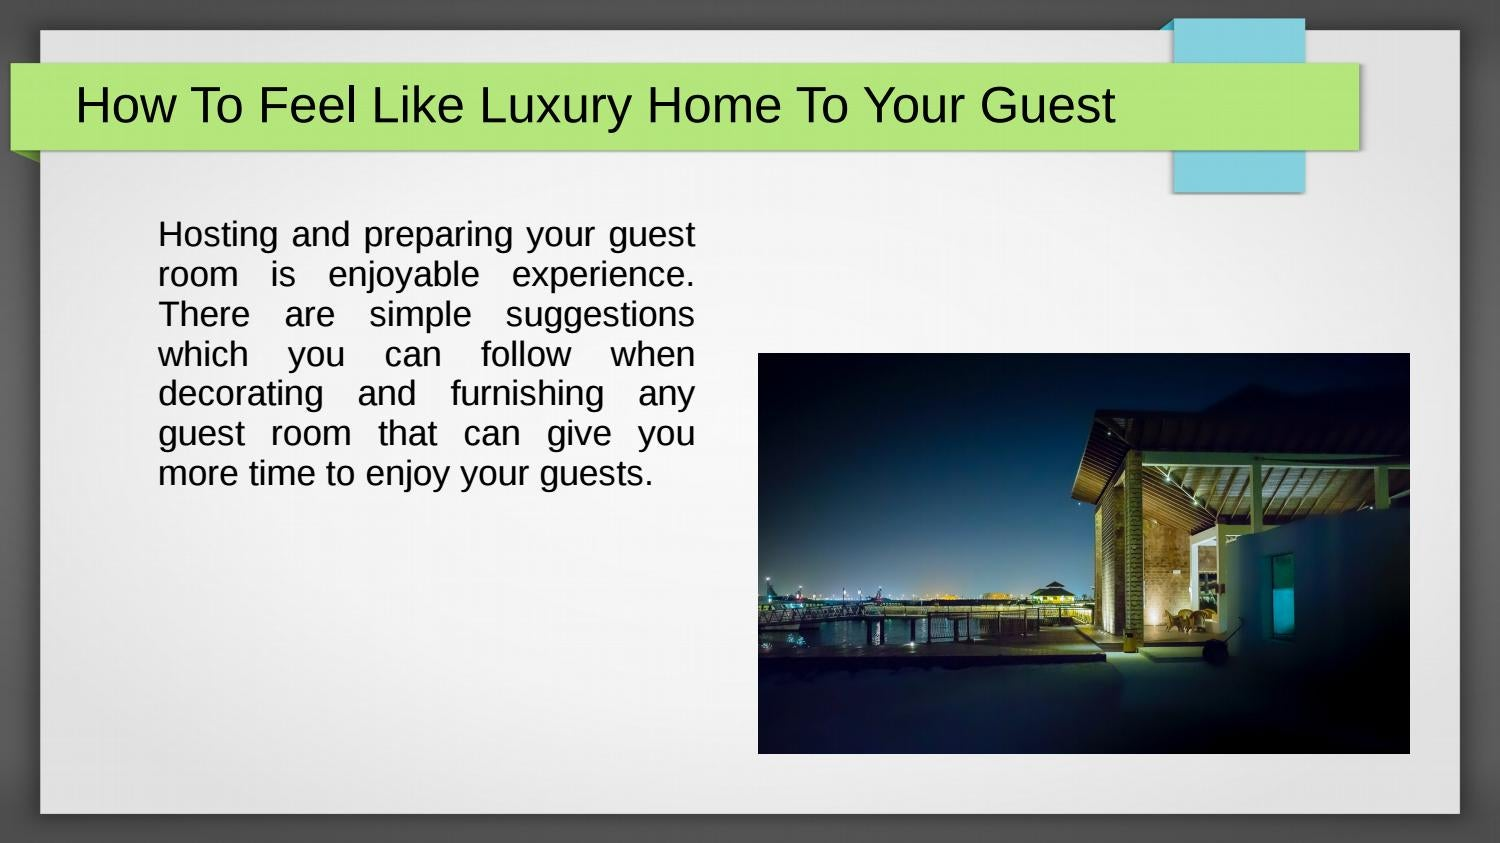 How To Feel Like Luxury Home To Your Guest